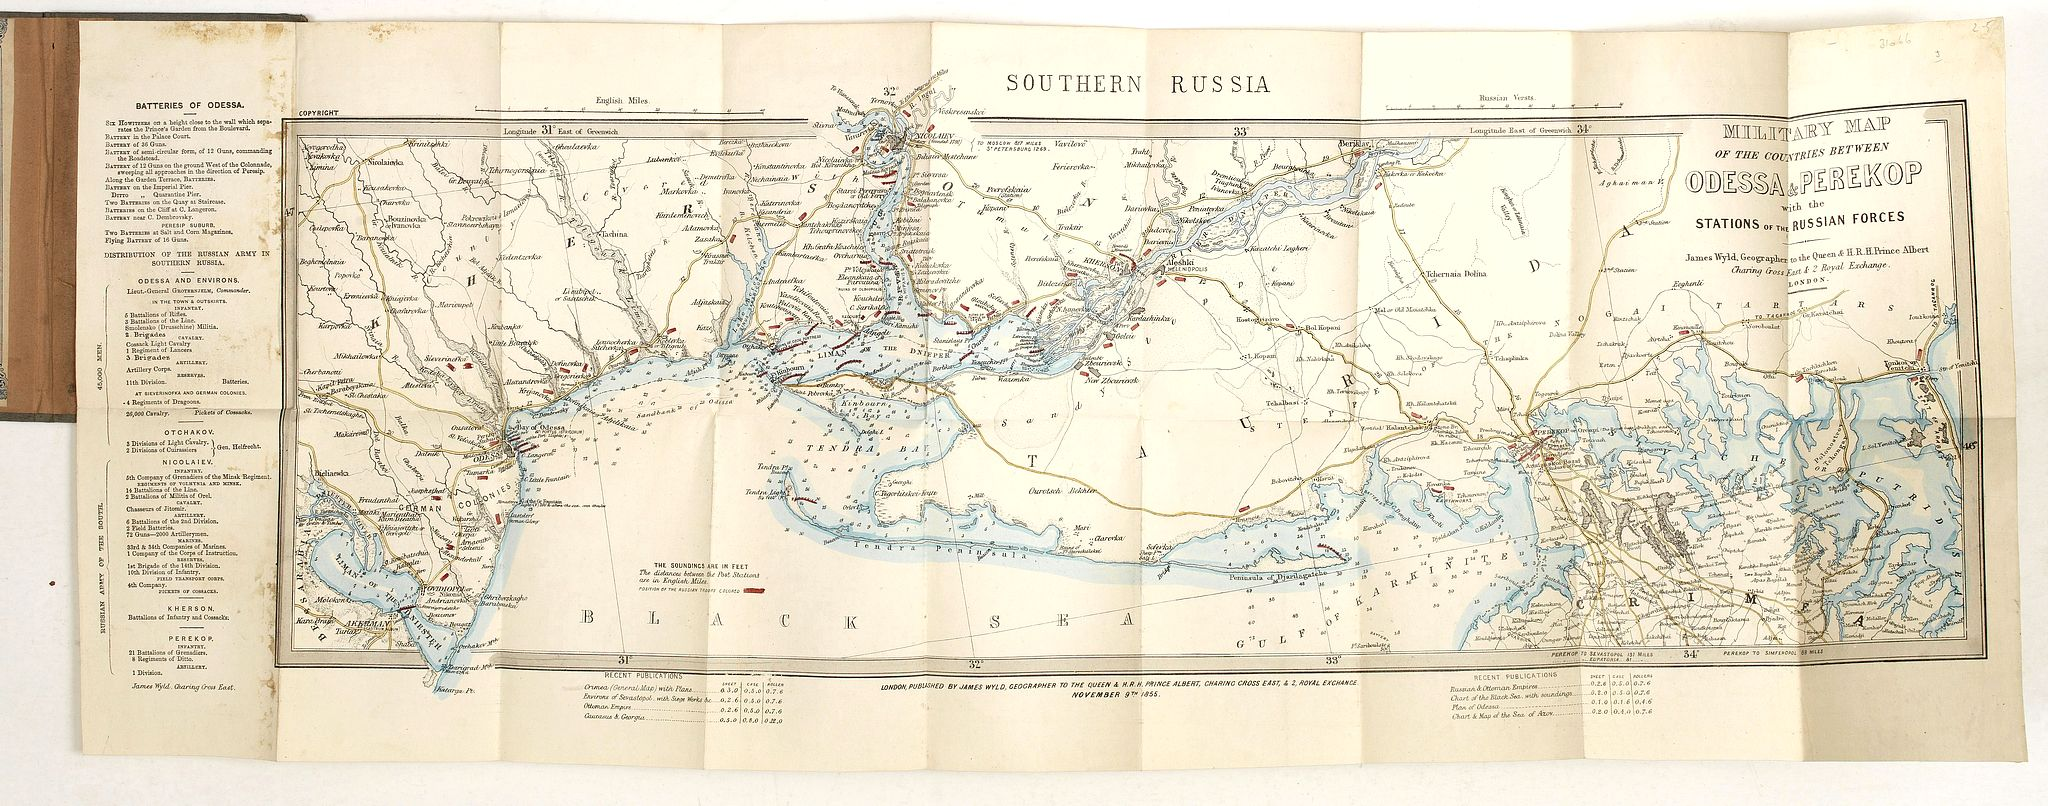 WYLD, J. -  Military map of the countries between Odessa & Perekop with the stations of the Russian forces.